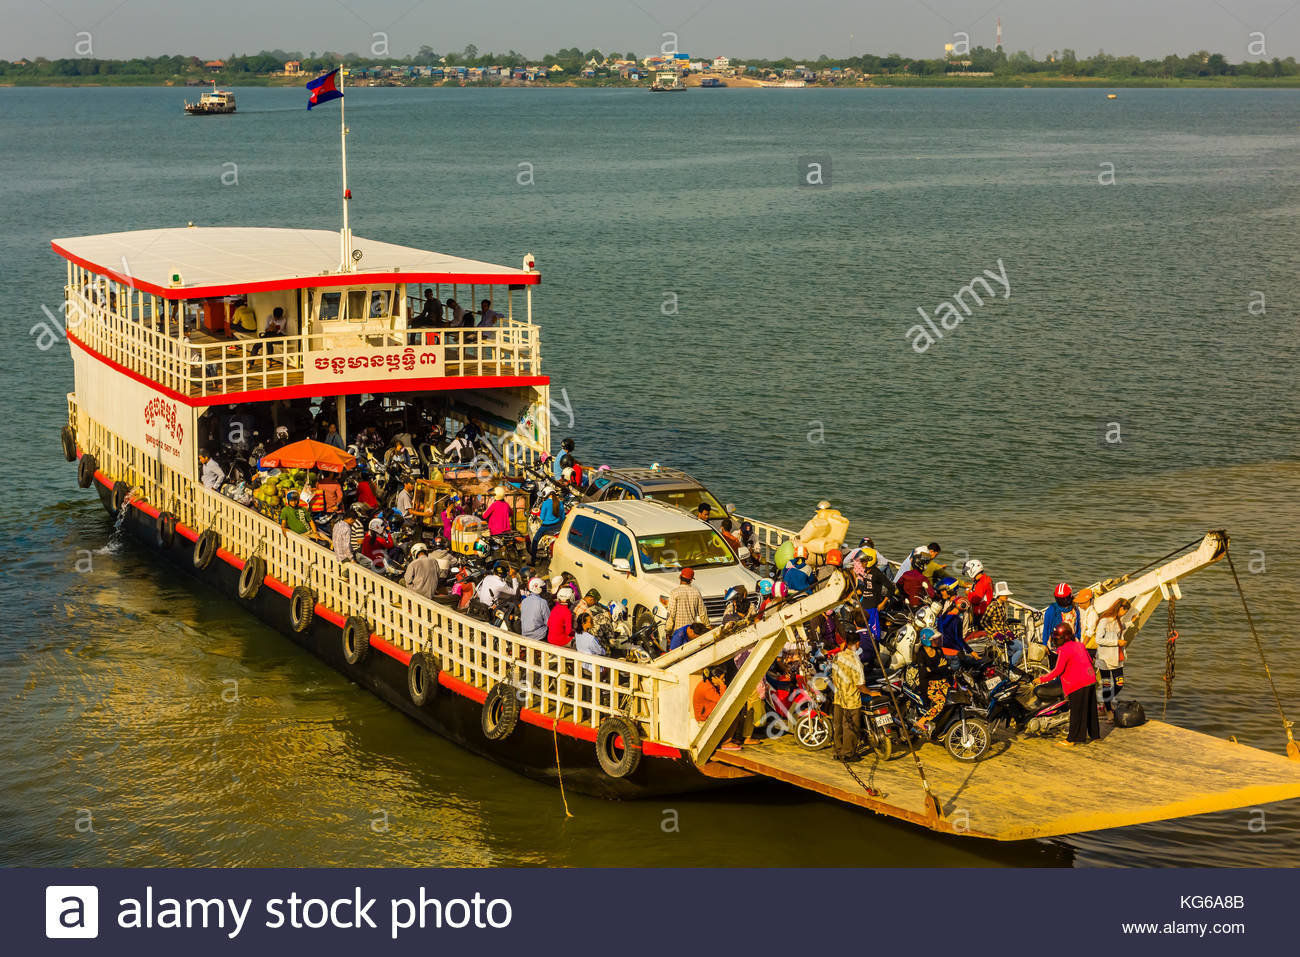 Ferry boats on the Tonle Sap River, Phnom Penh, Cambodia. - Stock Image